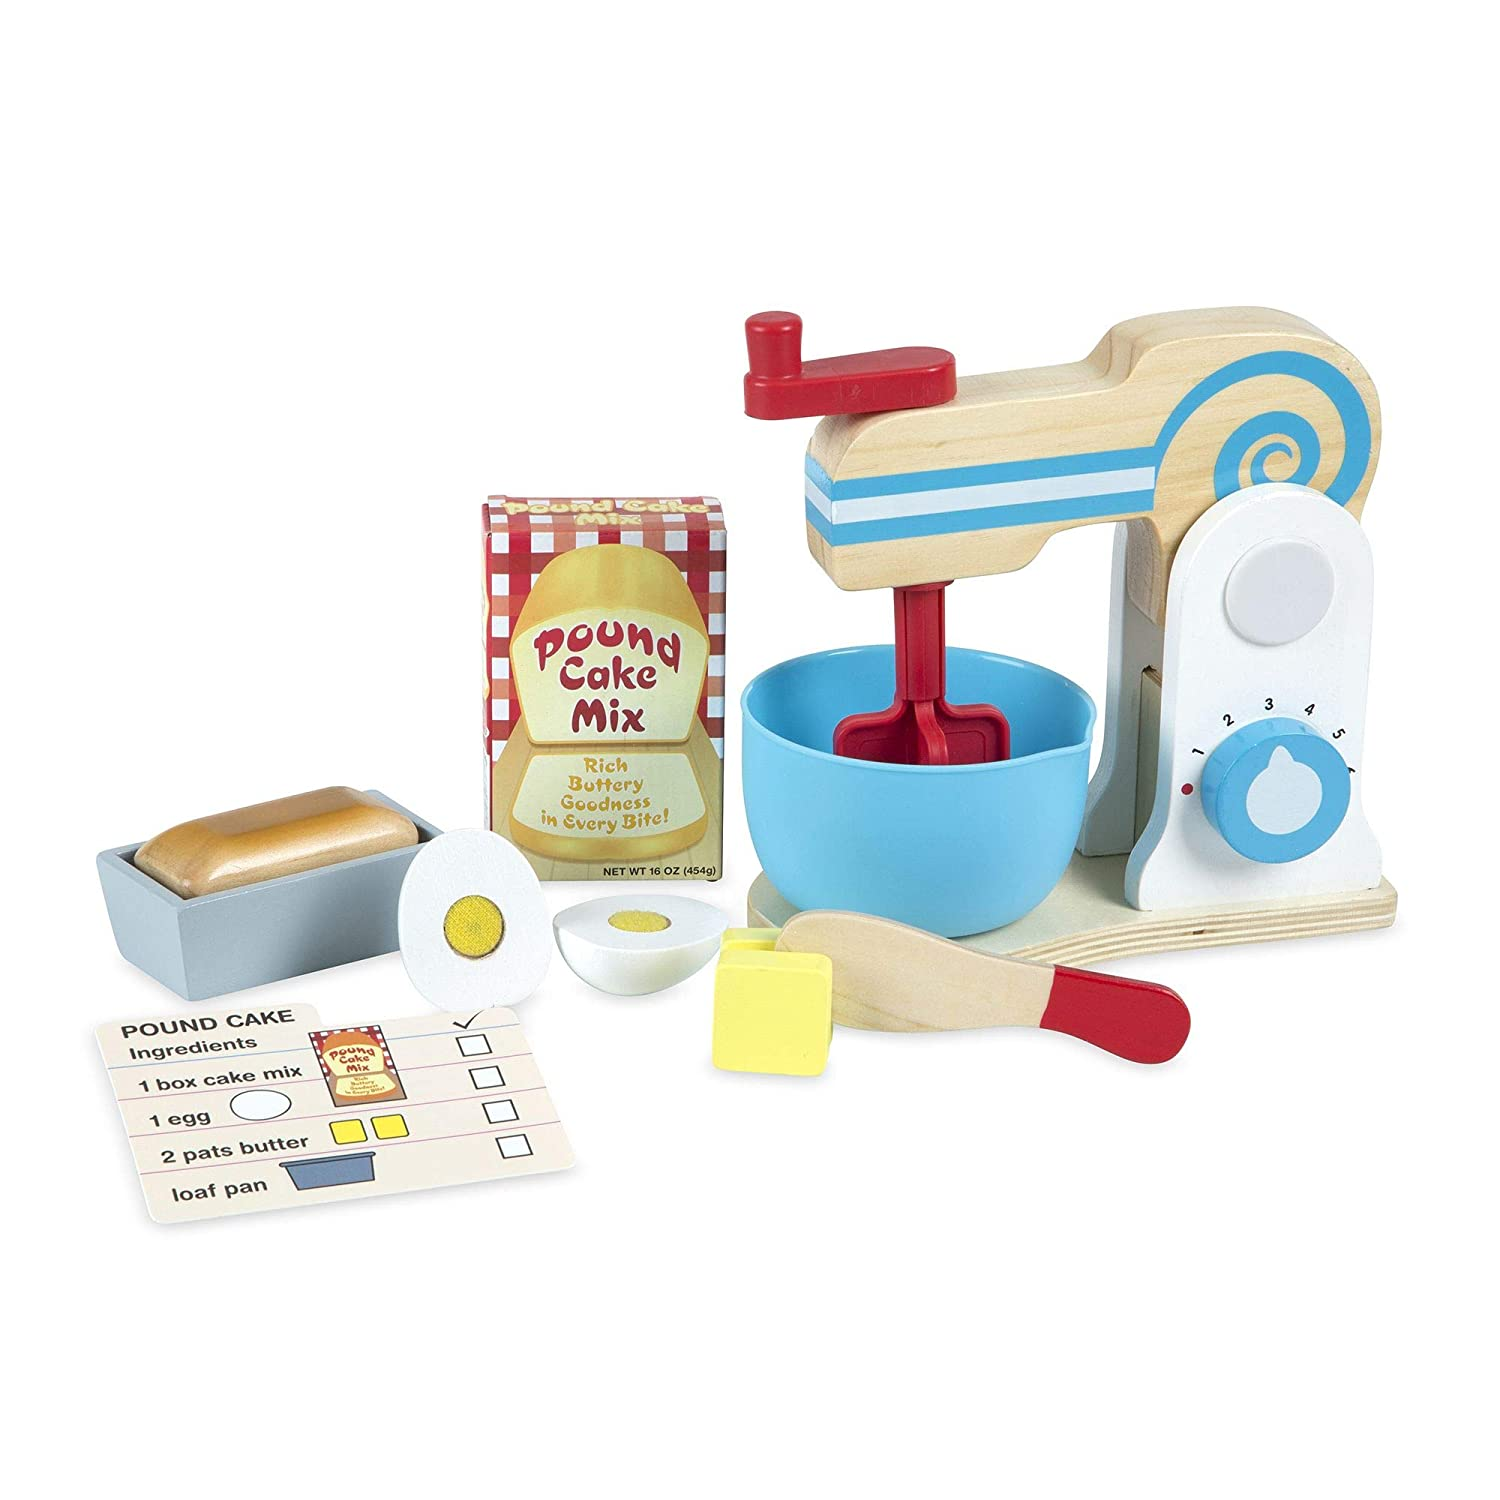 Melissa & Doug Wooden Make-a-Cake Mixer Set, Kitchen Toy, Numbered Turning Dials, Encourages Creative Thinking, 11-Piece Set, 13.5″ H × 10″ W × 5″ L